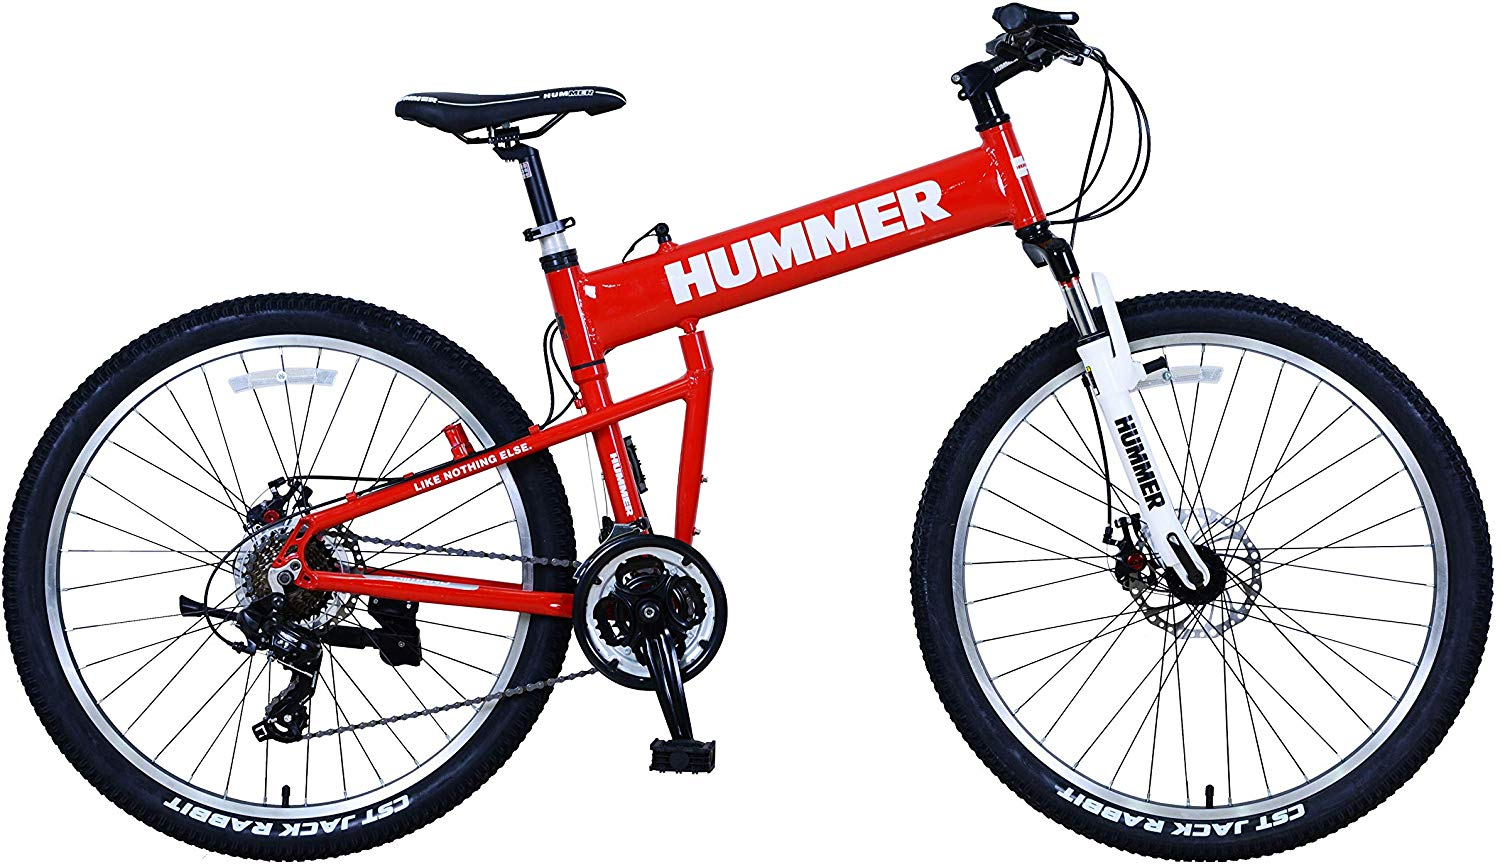 UPTEN Hummer Mountain Bike - 26 Inch Red